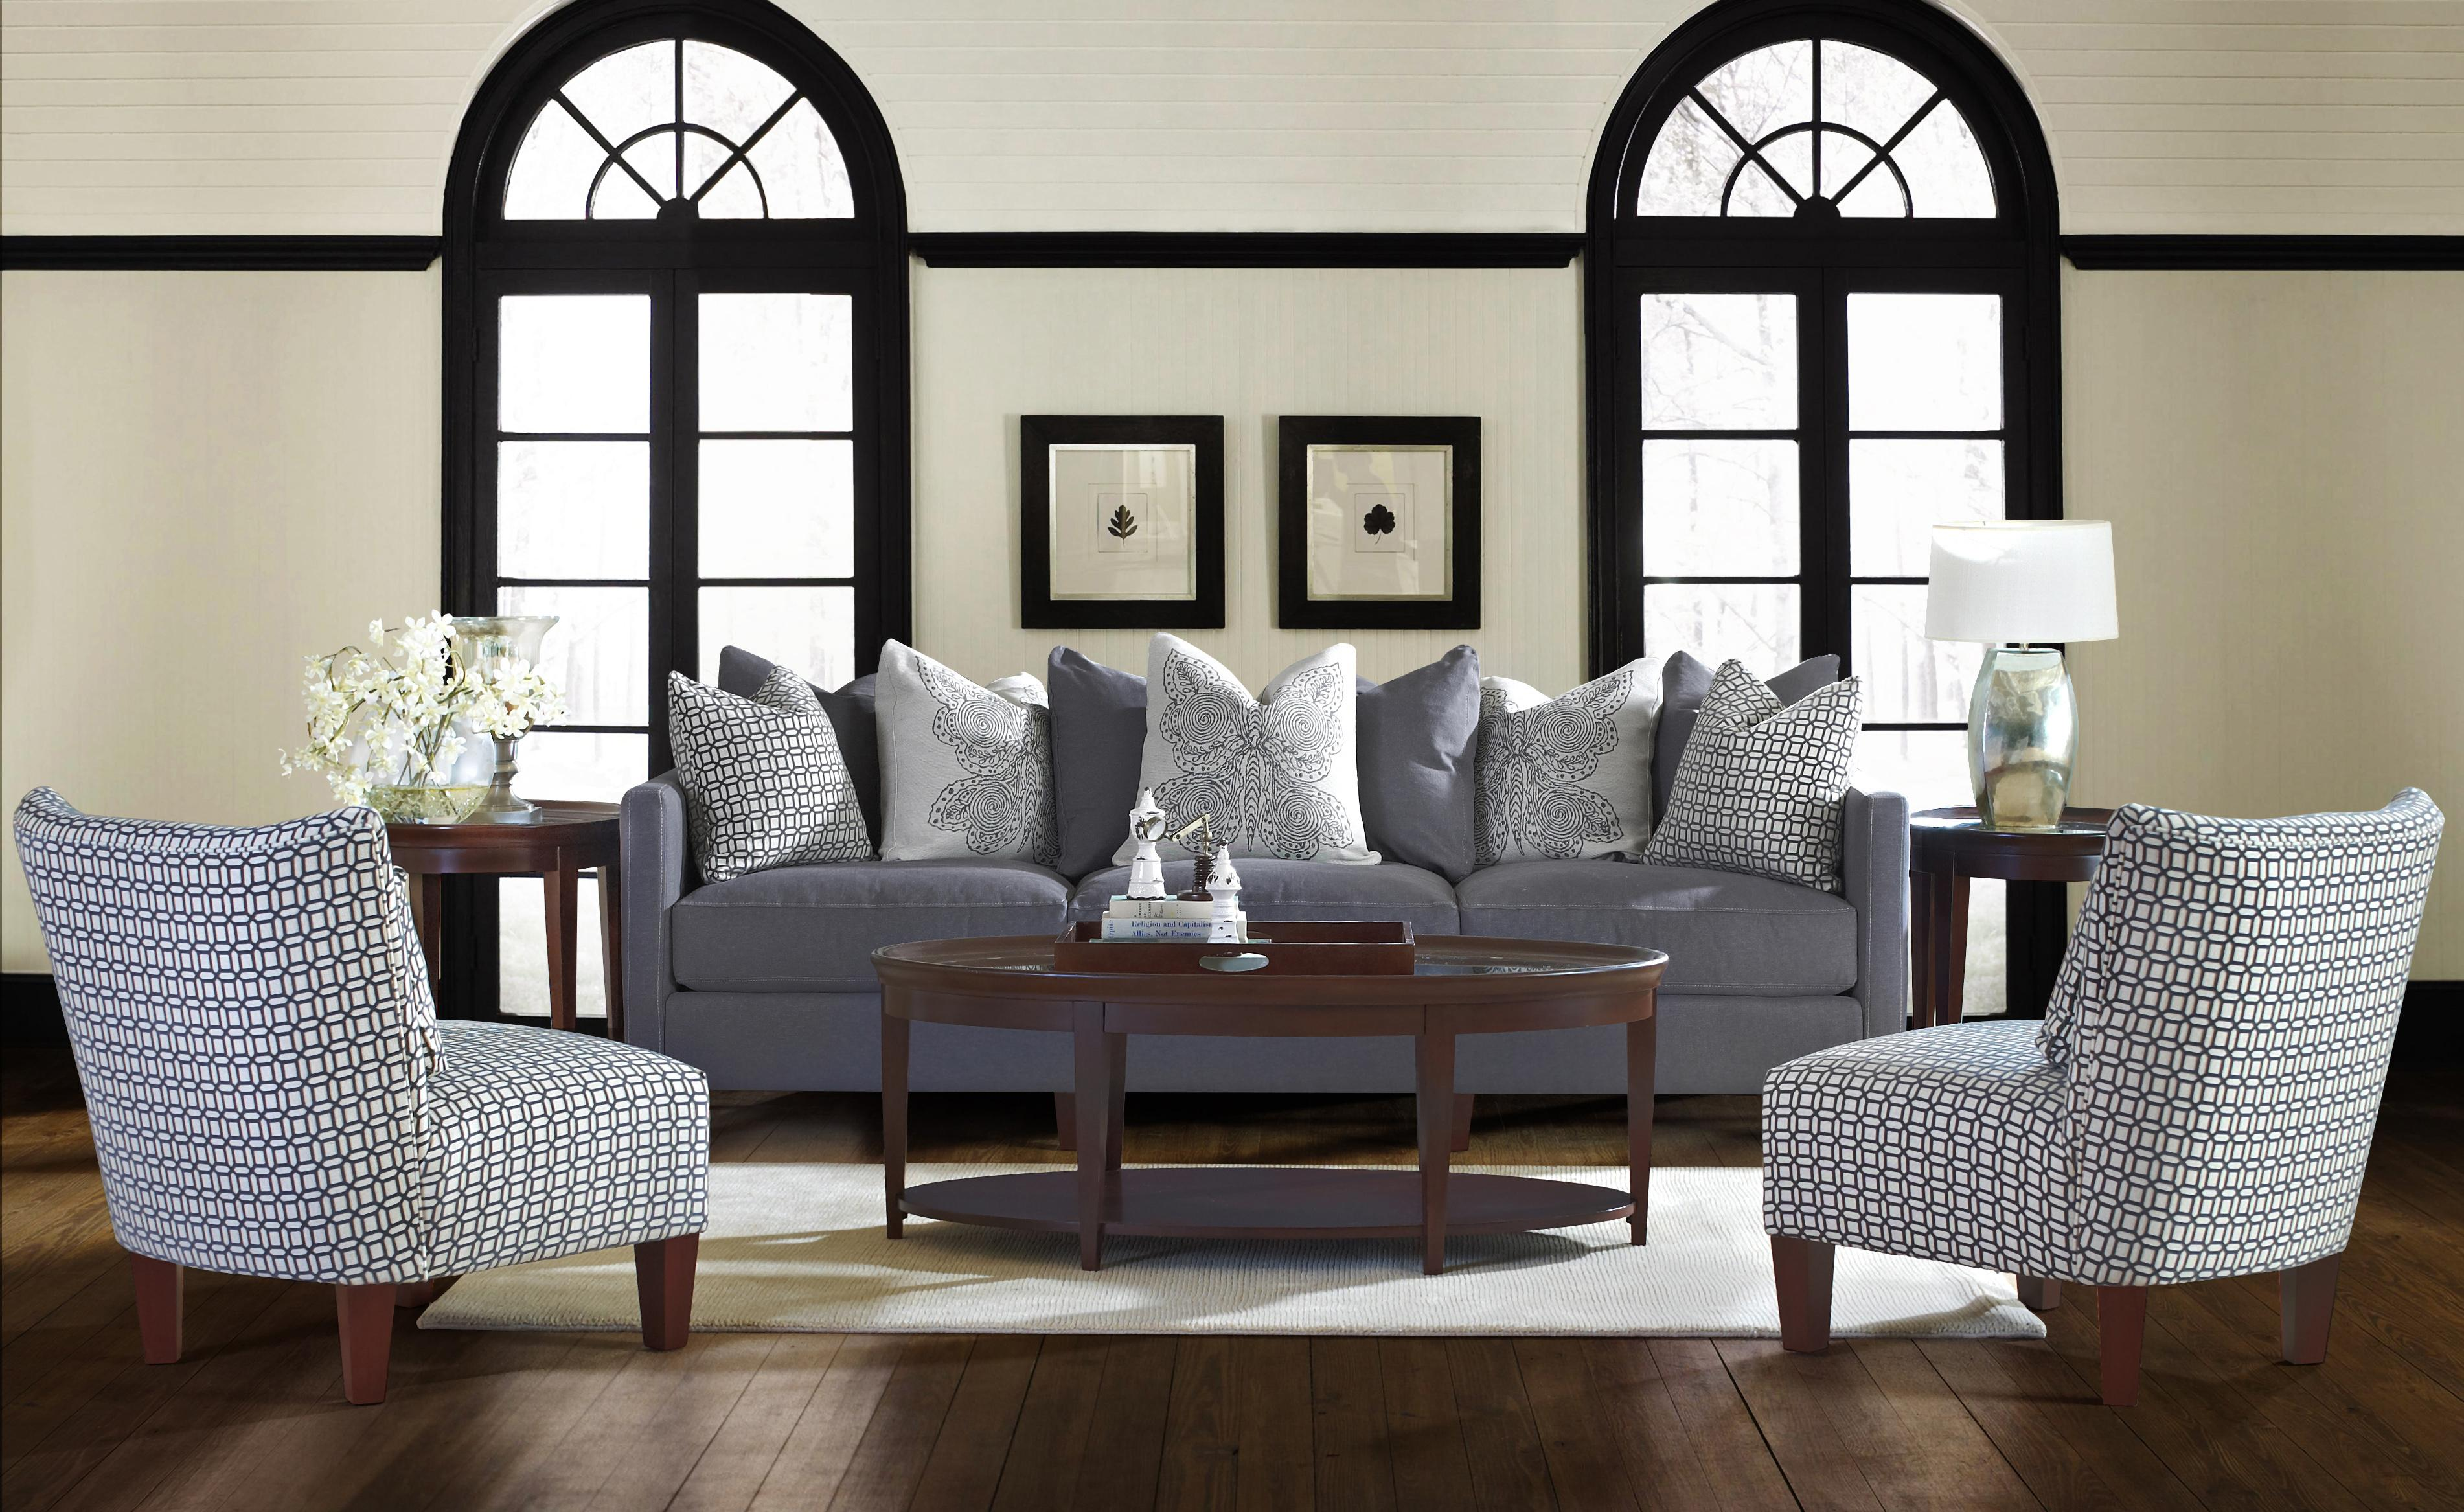 flared darvin furniture orland arms pors chaise klaussner brand ve raf il with sectional mh sofa and cupboard three products chicago piece park